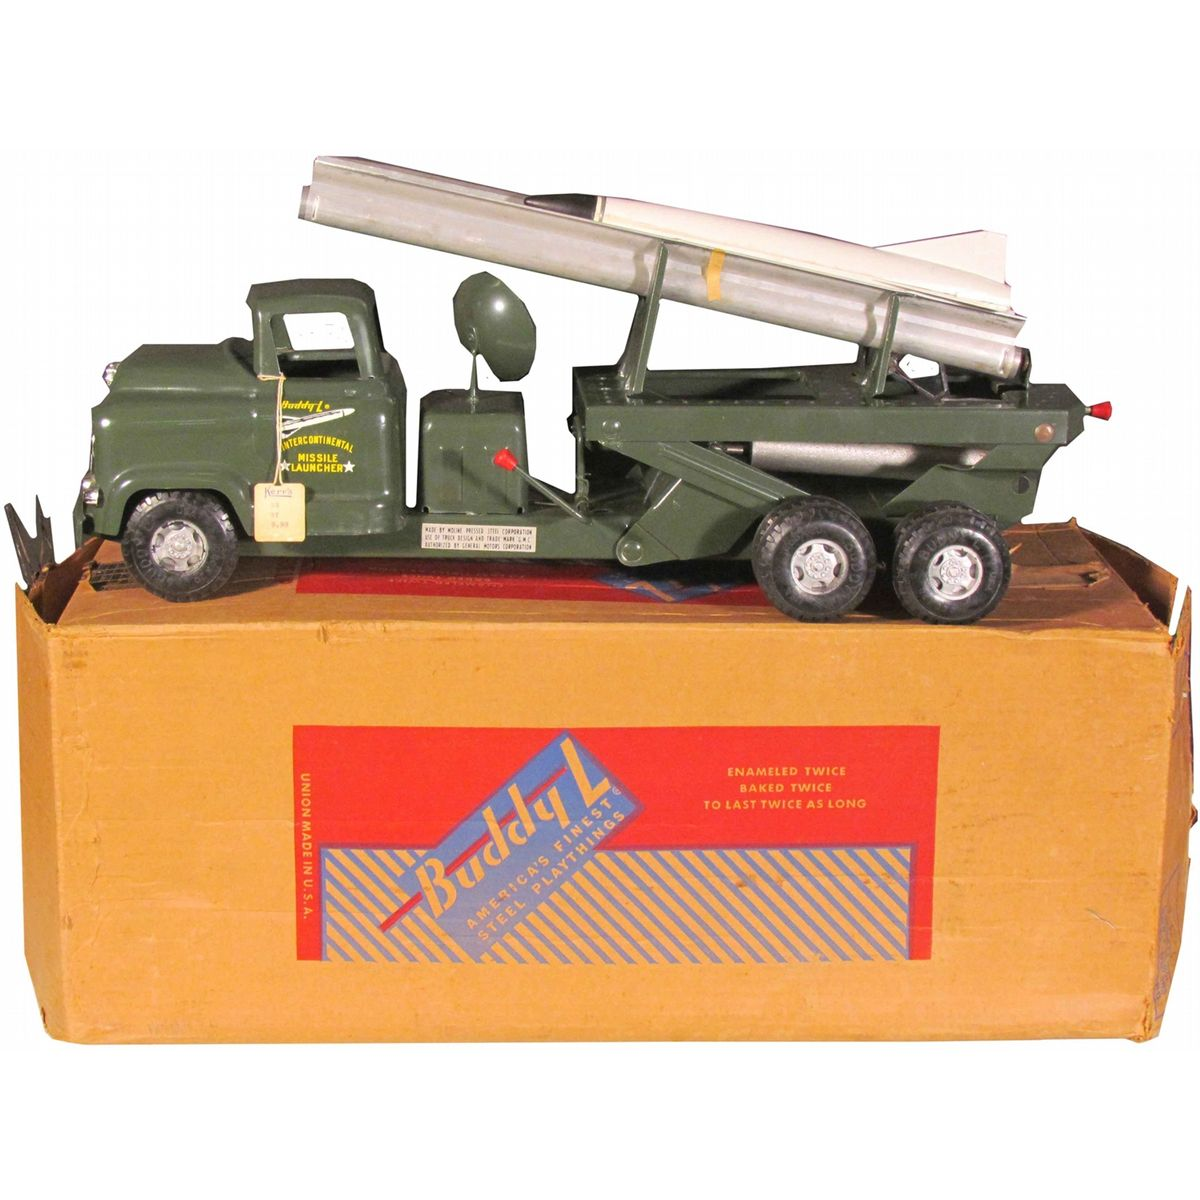 Vintage toy rocket launcher